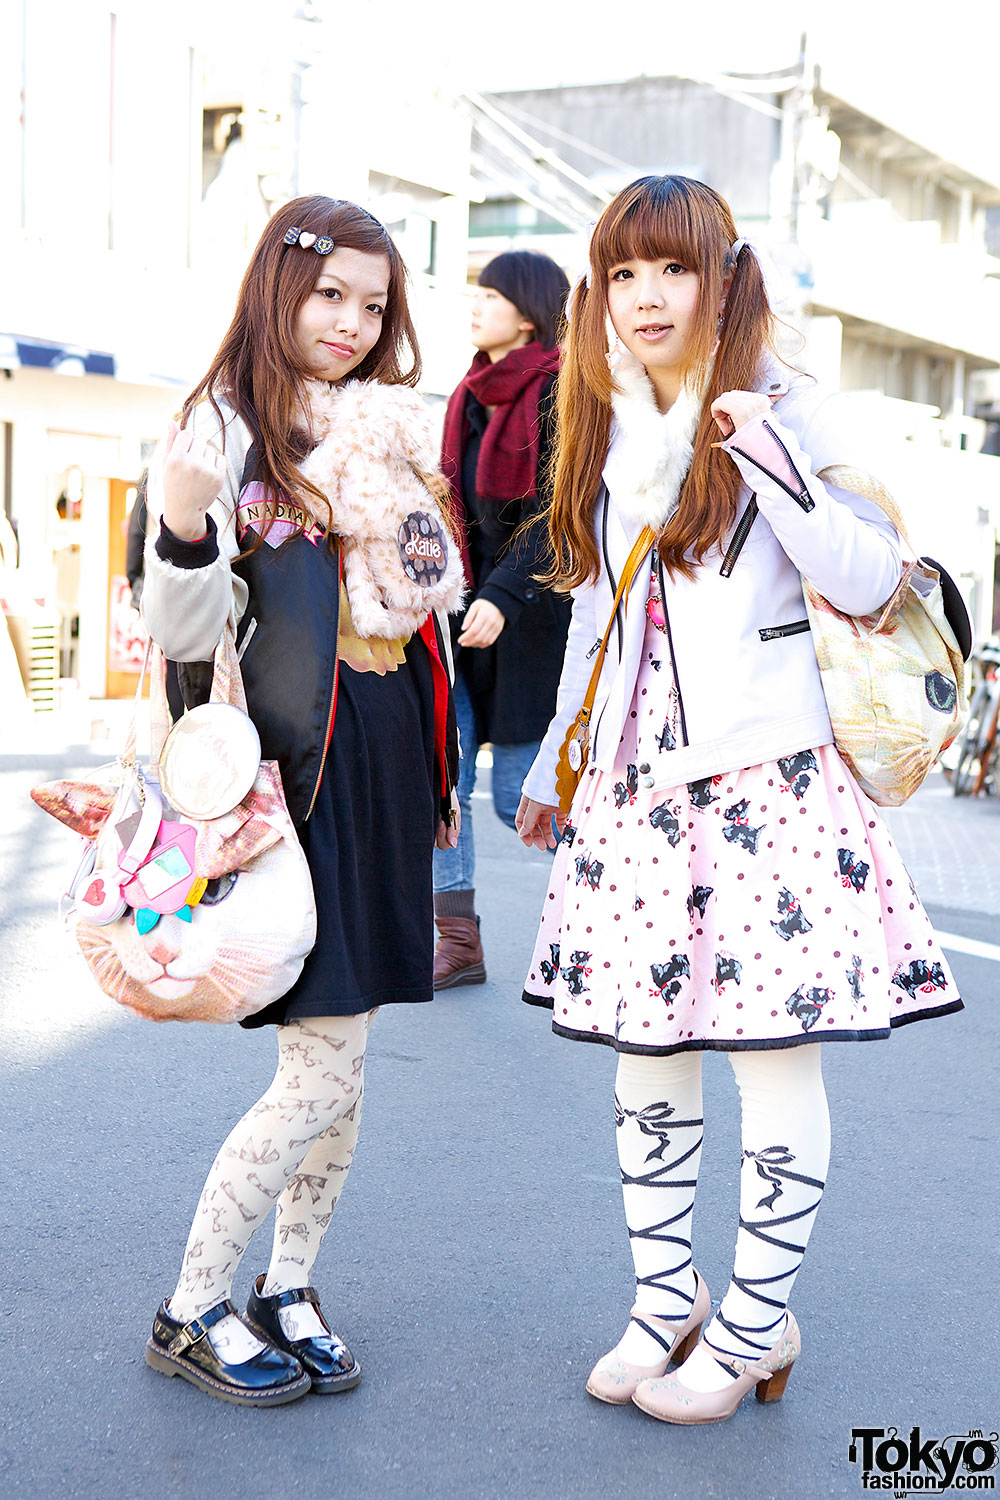 Harajuku Girls in Cute Fashion